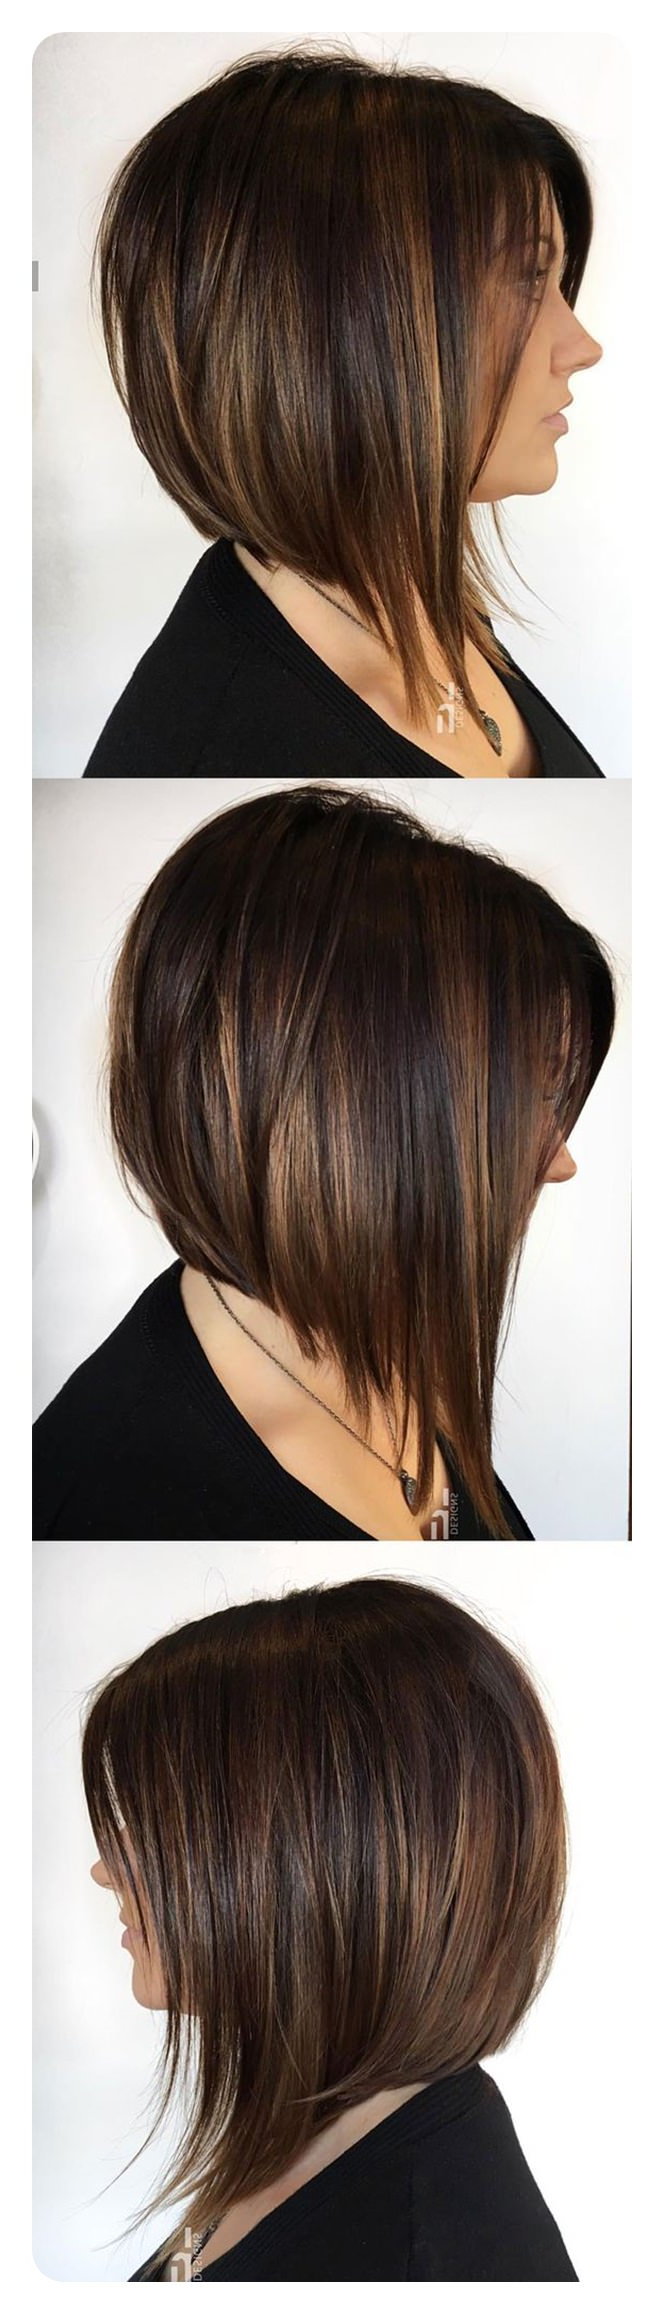 92 Layered Inverted Bob Hairstyles That You Should Try With Regard To Tapered Shaggy Chocolate Brown Bob Hairstyles (Gallery 8 of 20)